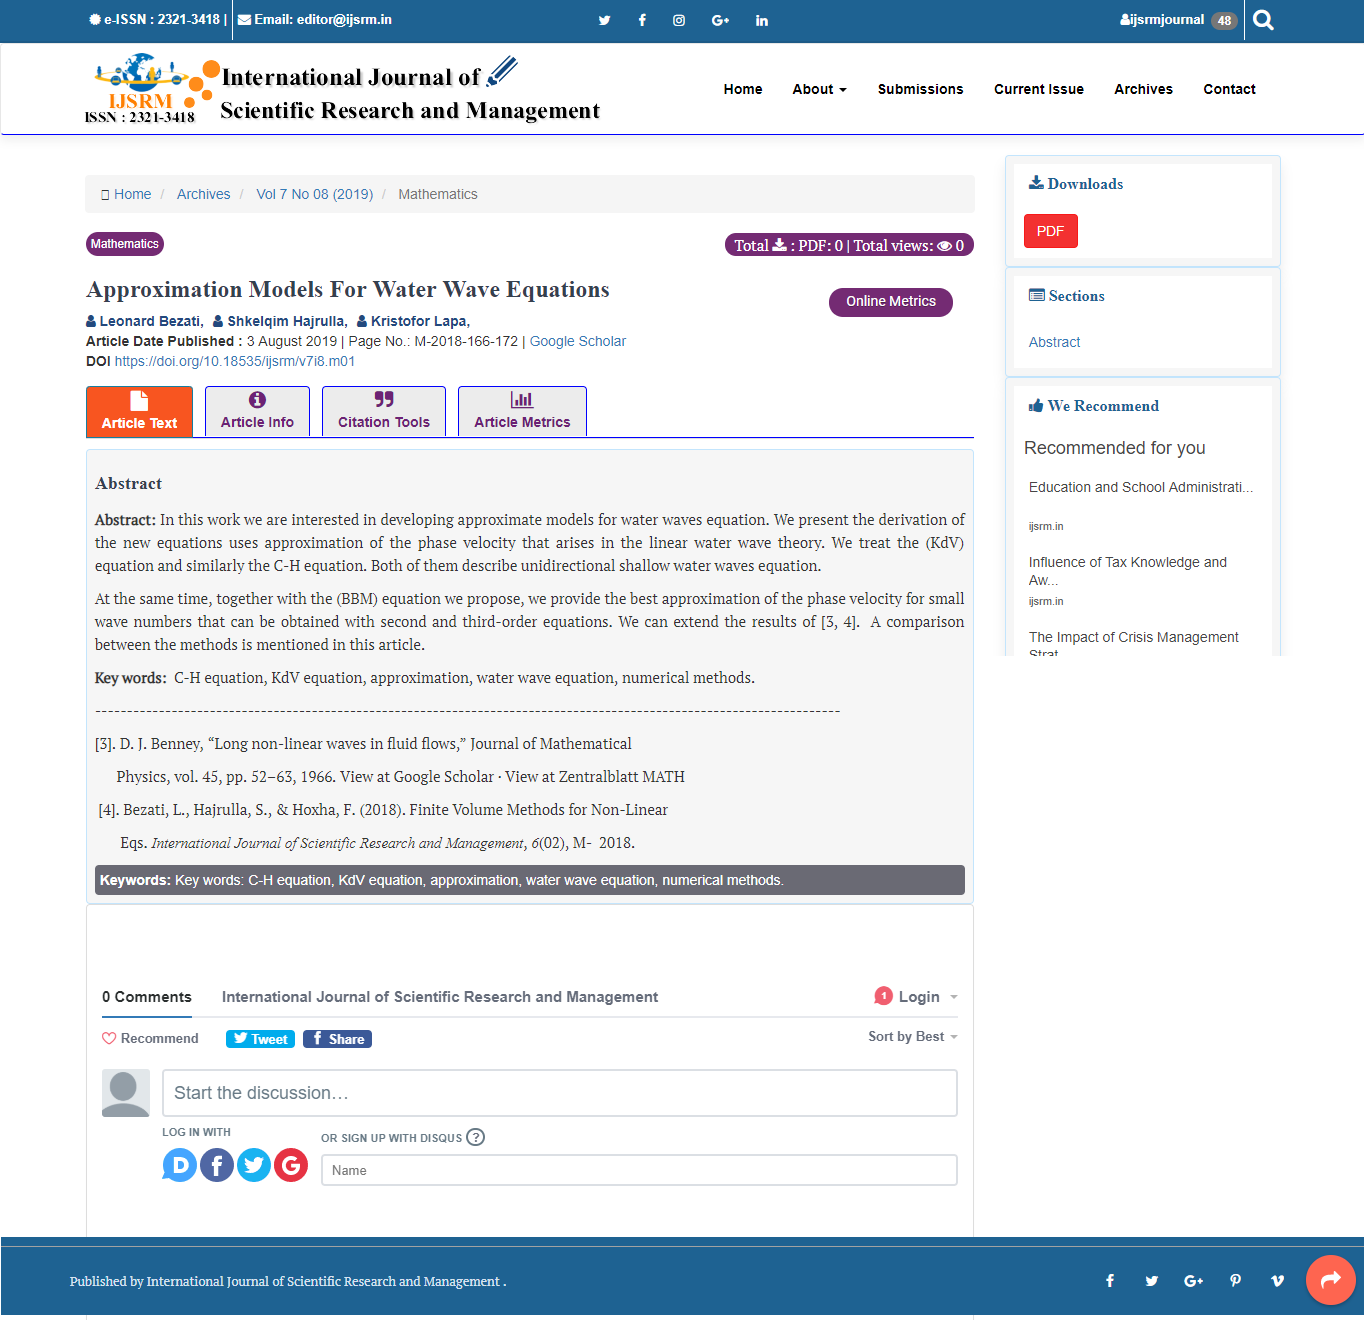 International Journal of Scientific Research and Management